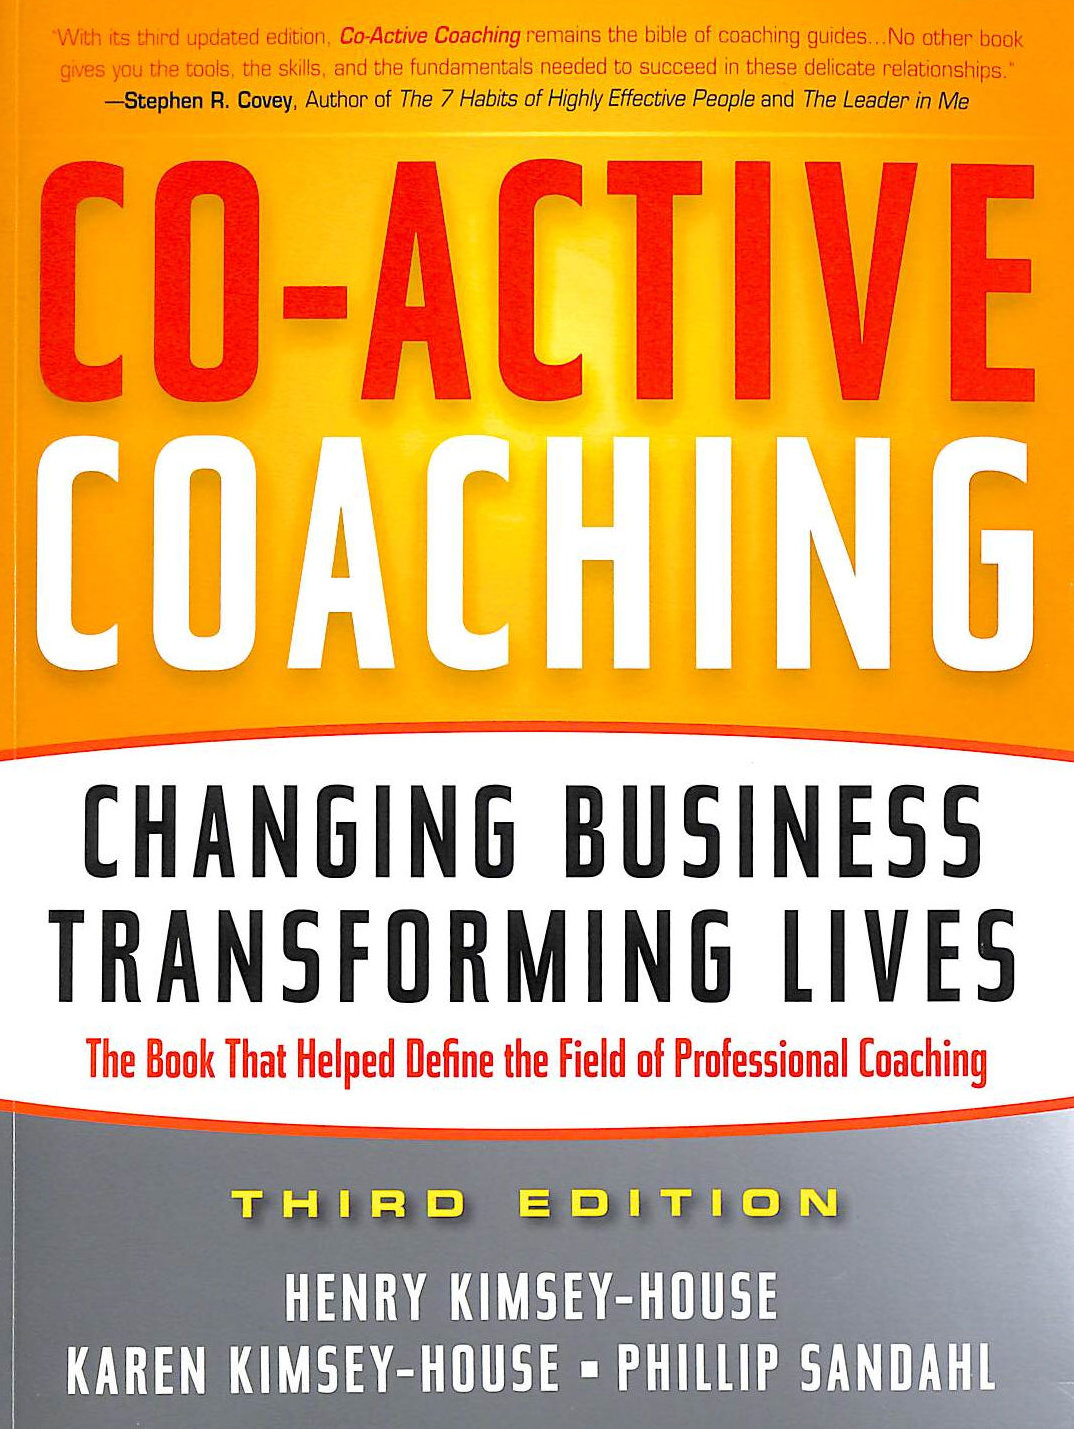 Image for Co-Active Coaching: Changing Business, Transforming Lives